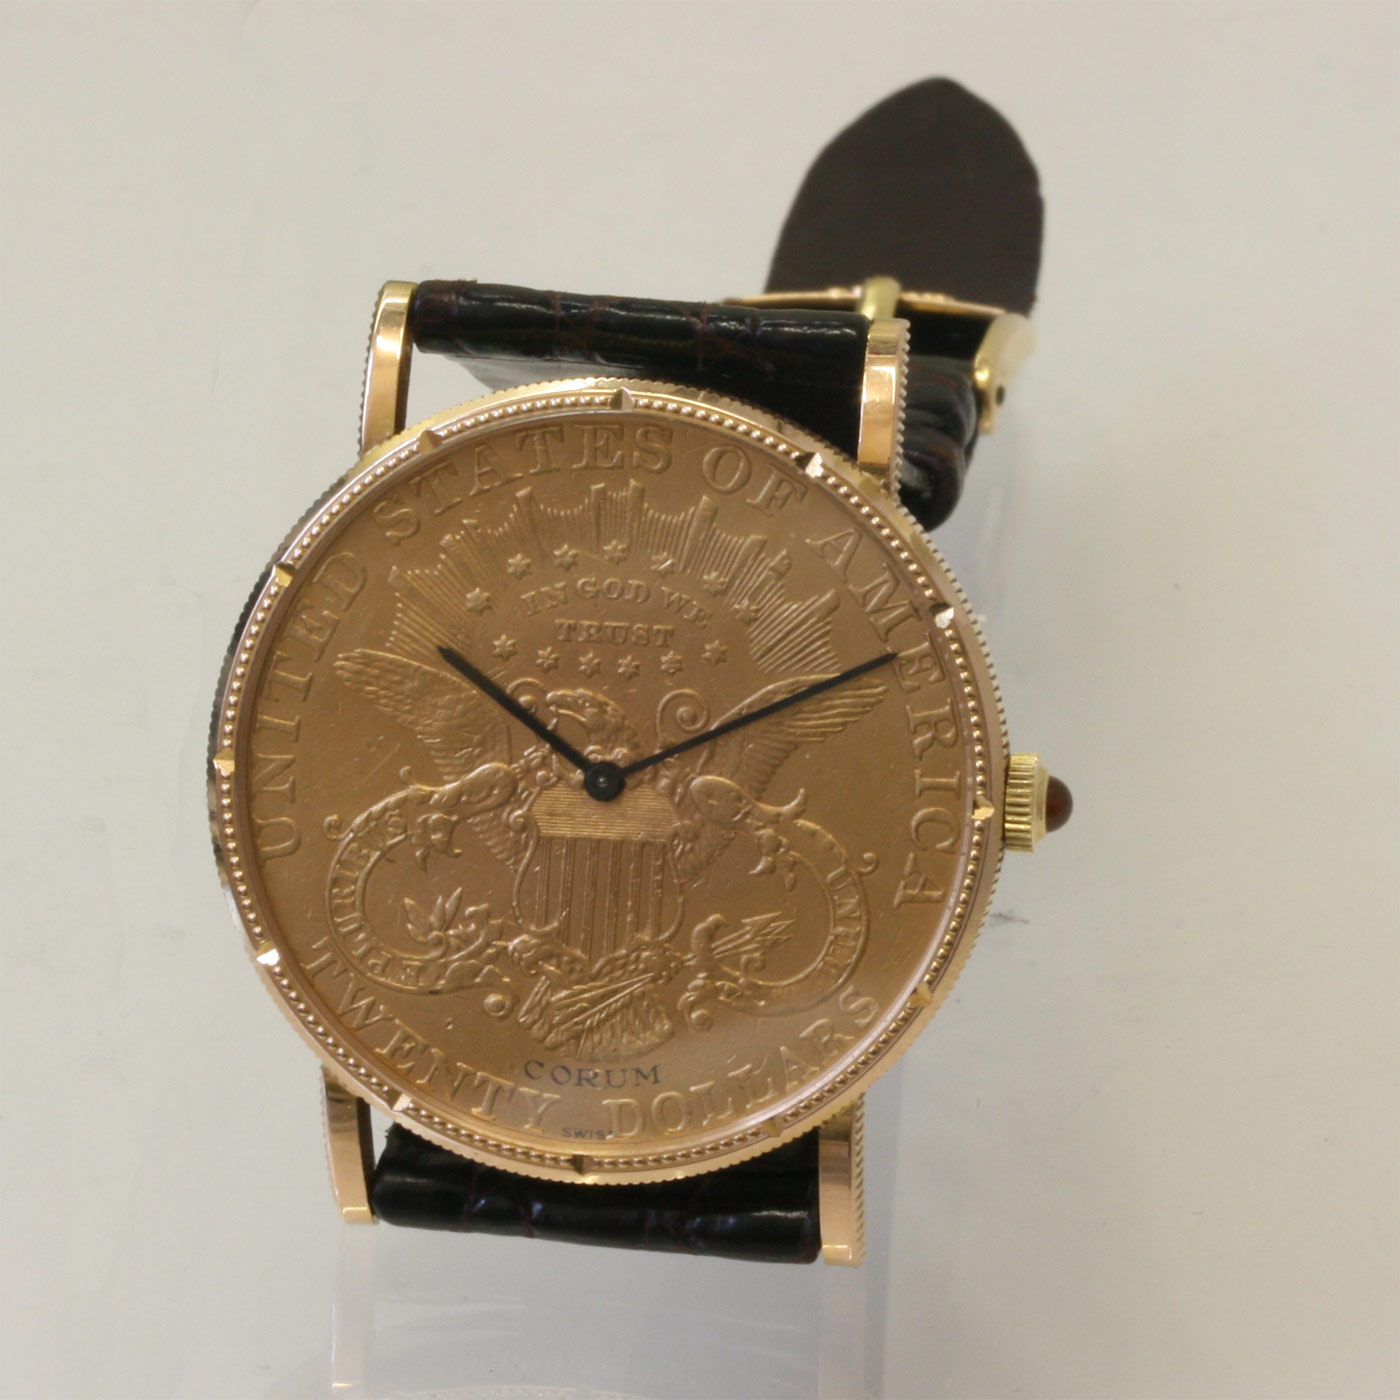 Buy Corum Coin Watch Sold Items Sold Watches Sydney